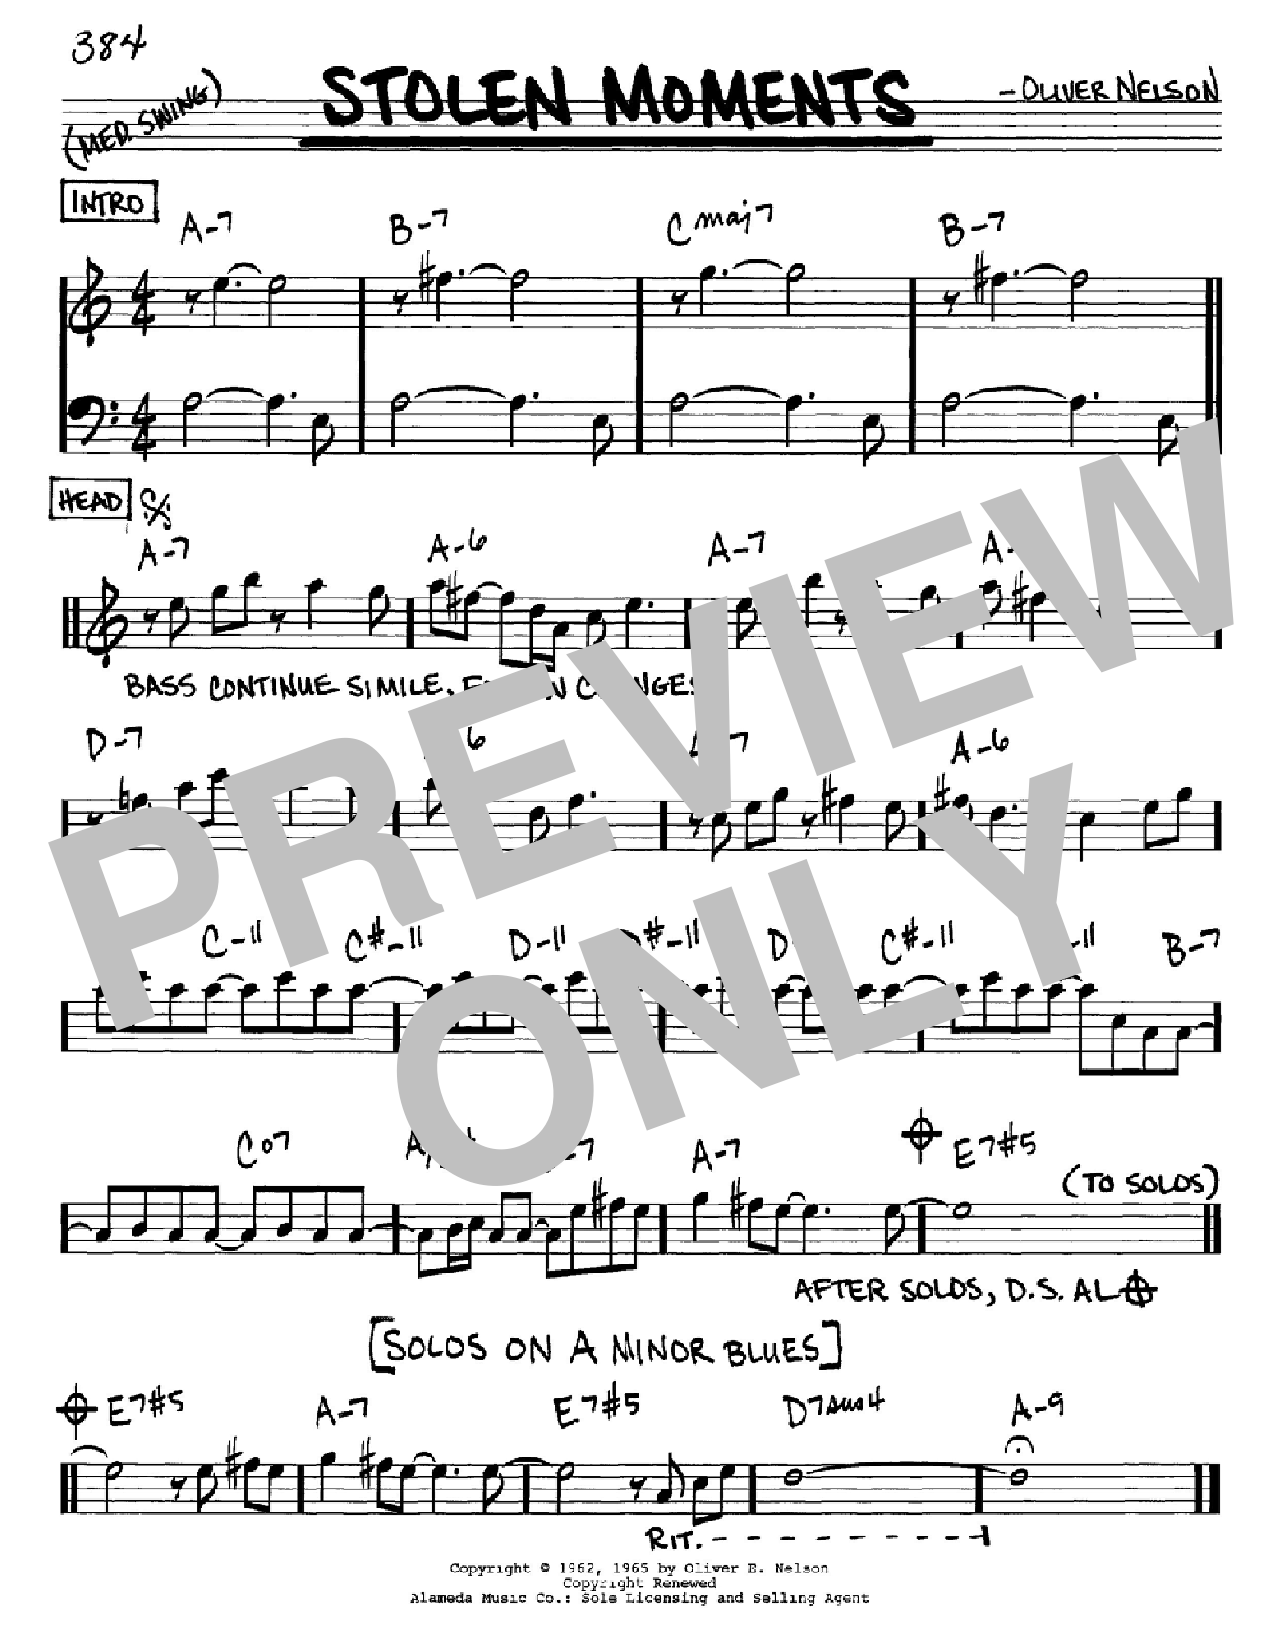 Sheet Music Digital Files To Print - Licensed Oliver Nelson